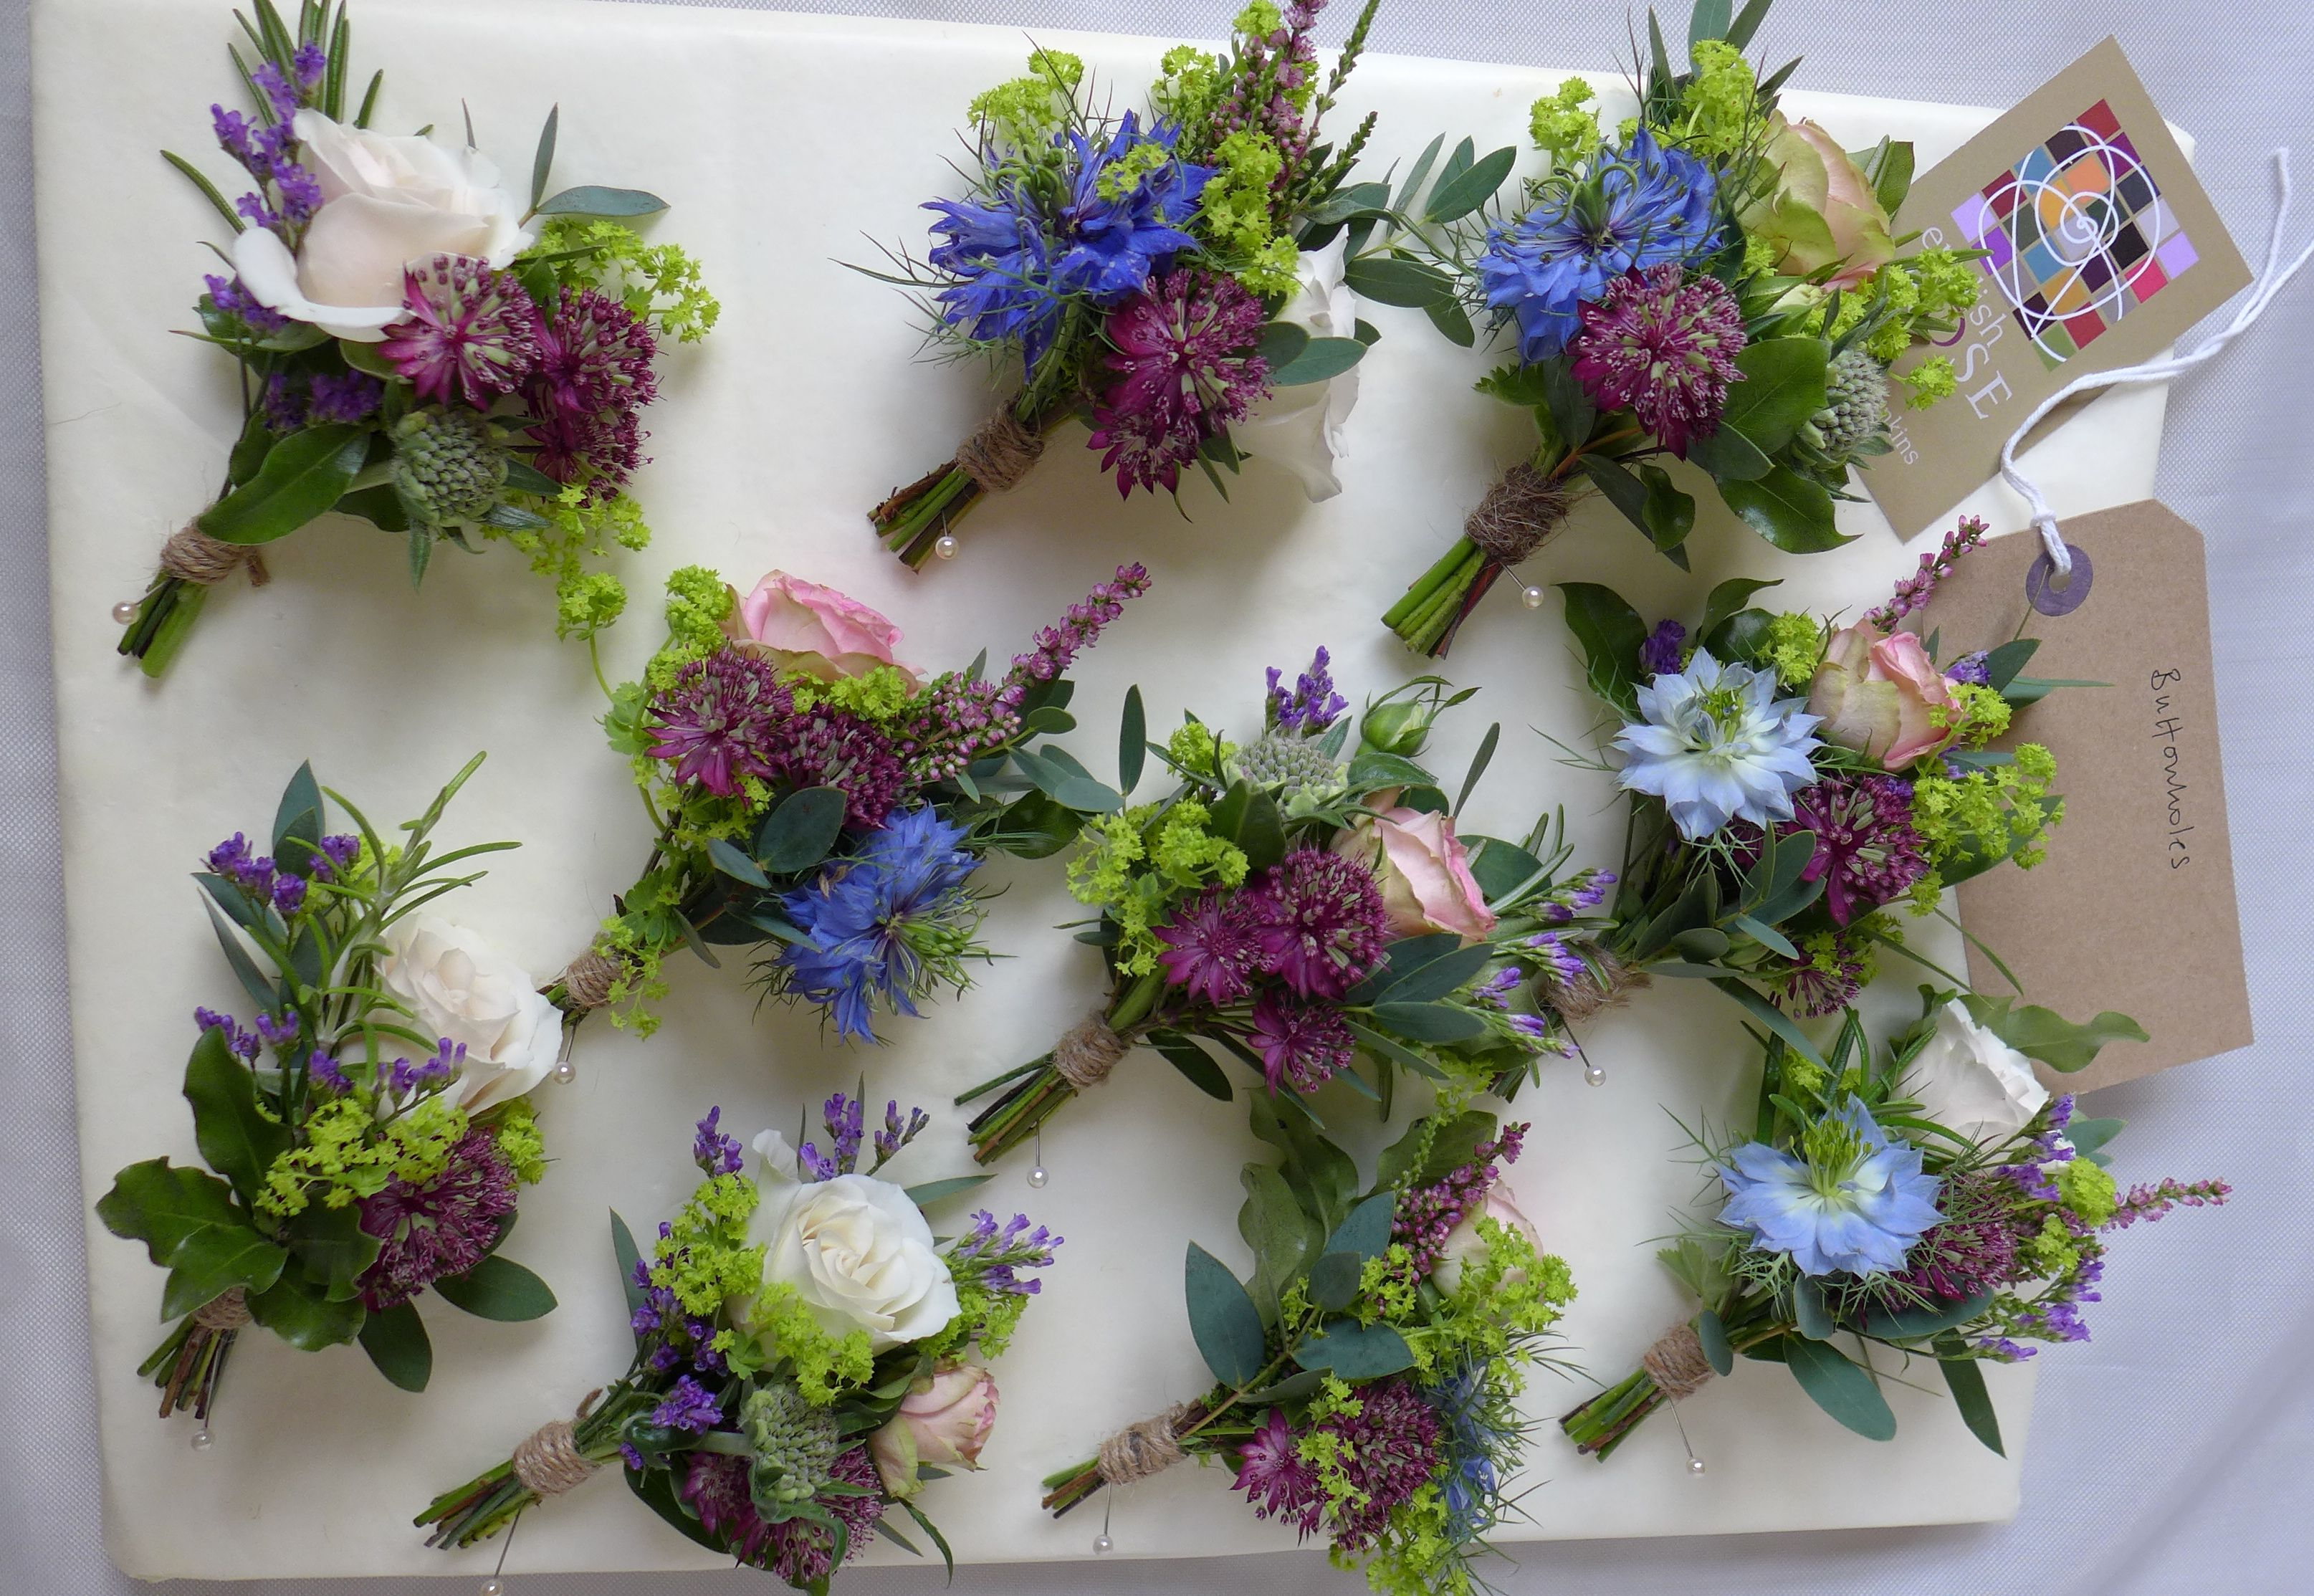 Natural country style buttonholes tied with twine